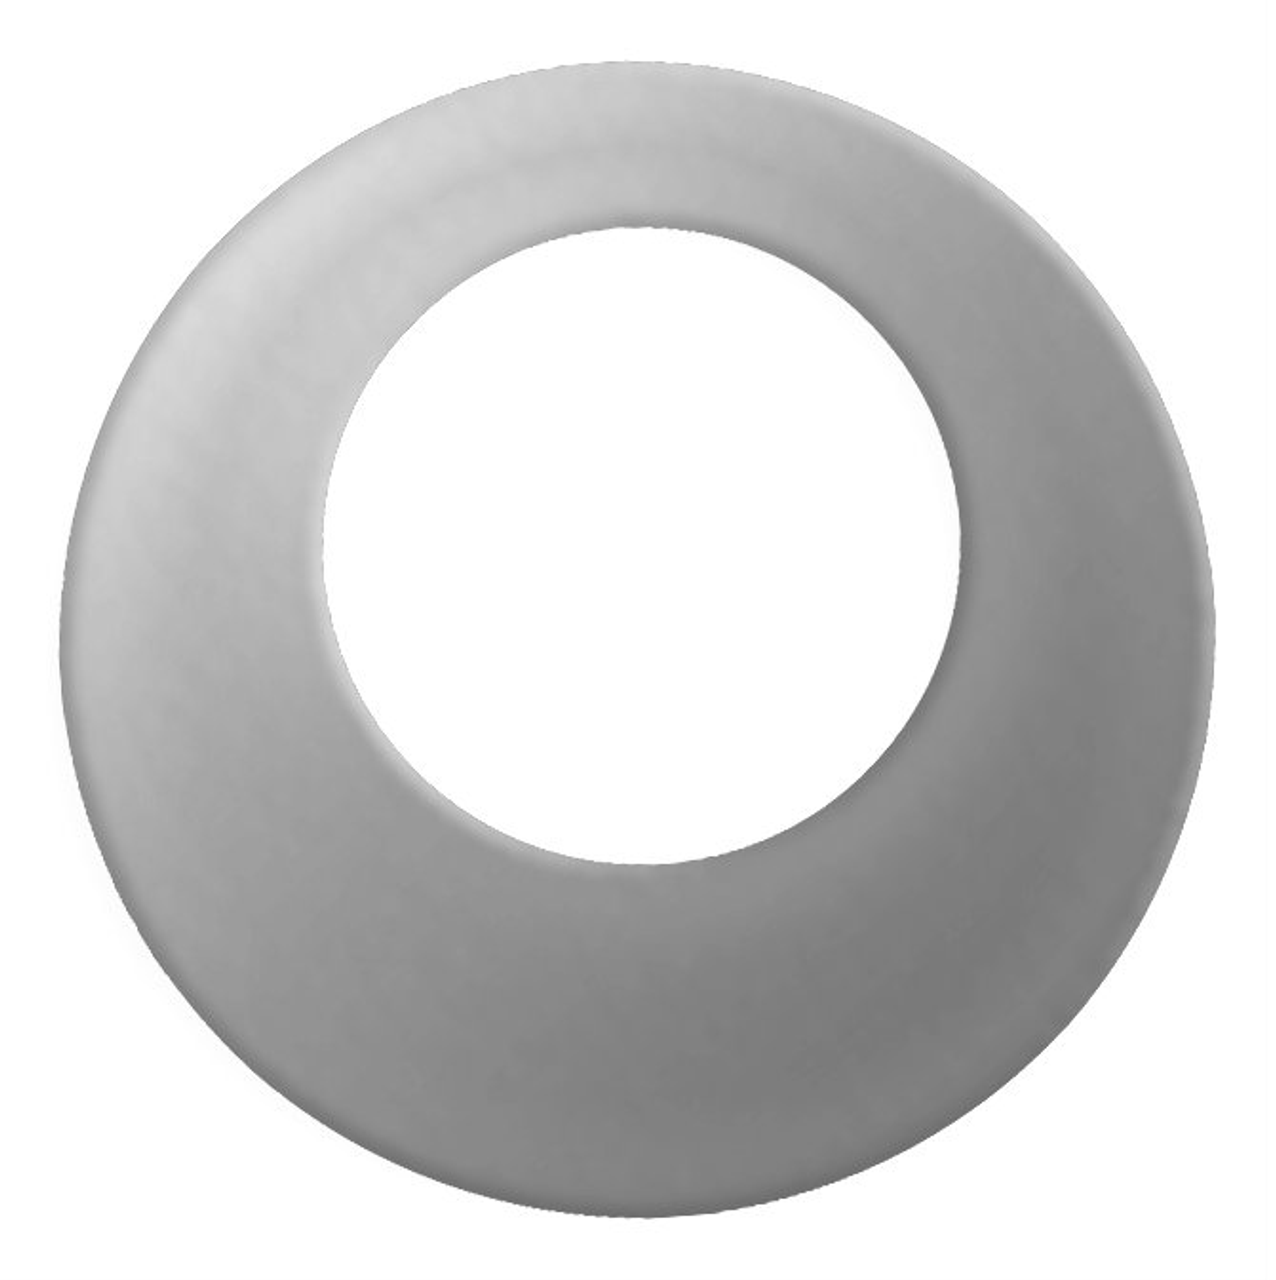 Aluminium Blank Disc Stamped Shape for Jewellery Making & Other Crafts